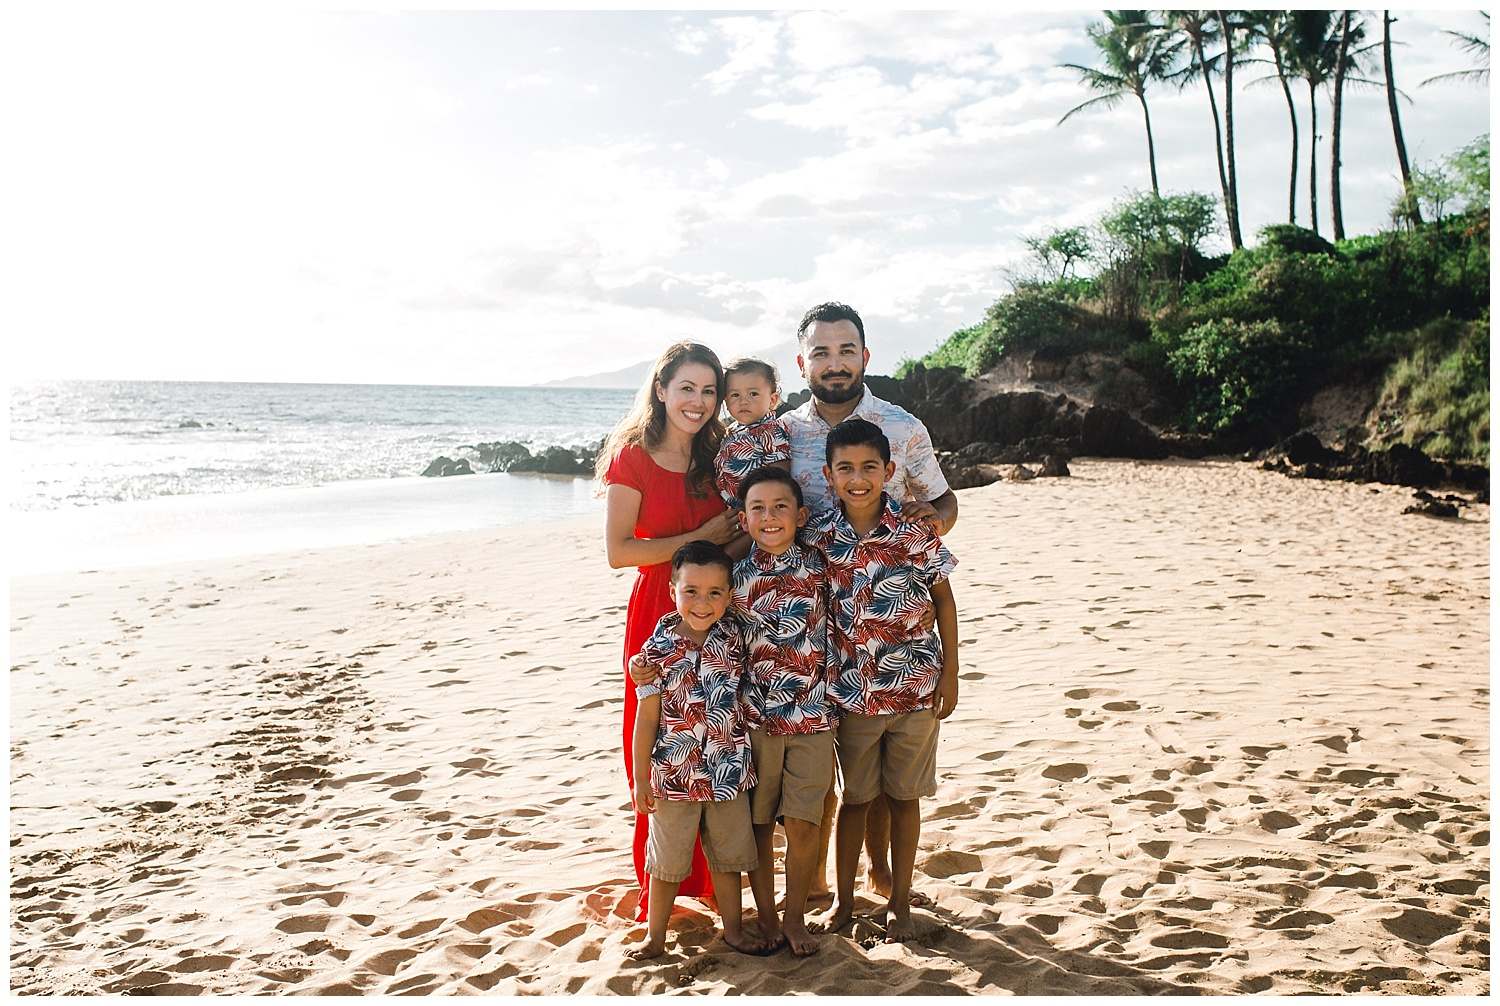 Maui-Family-Photography-Po'olenalena-Beach-Maui_0001.jpg